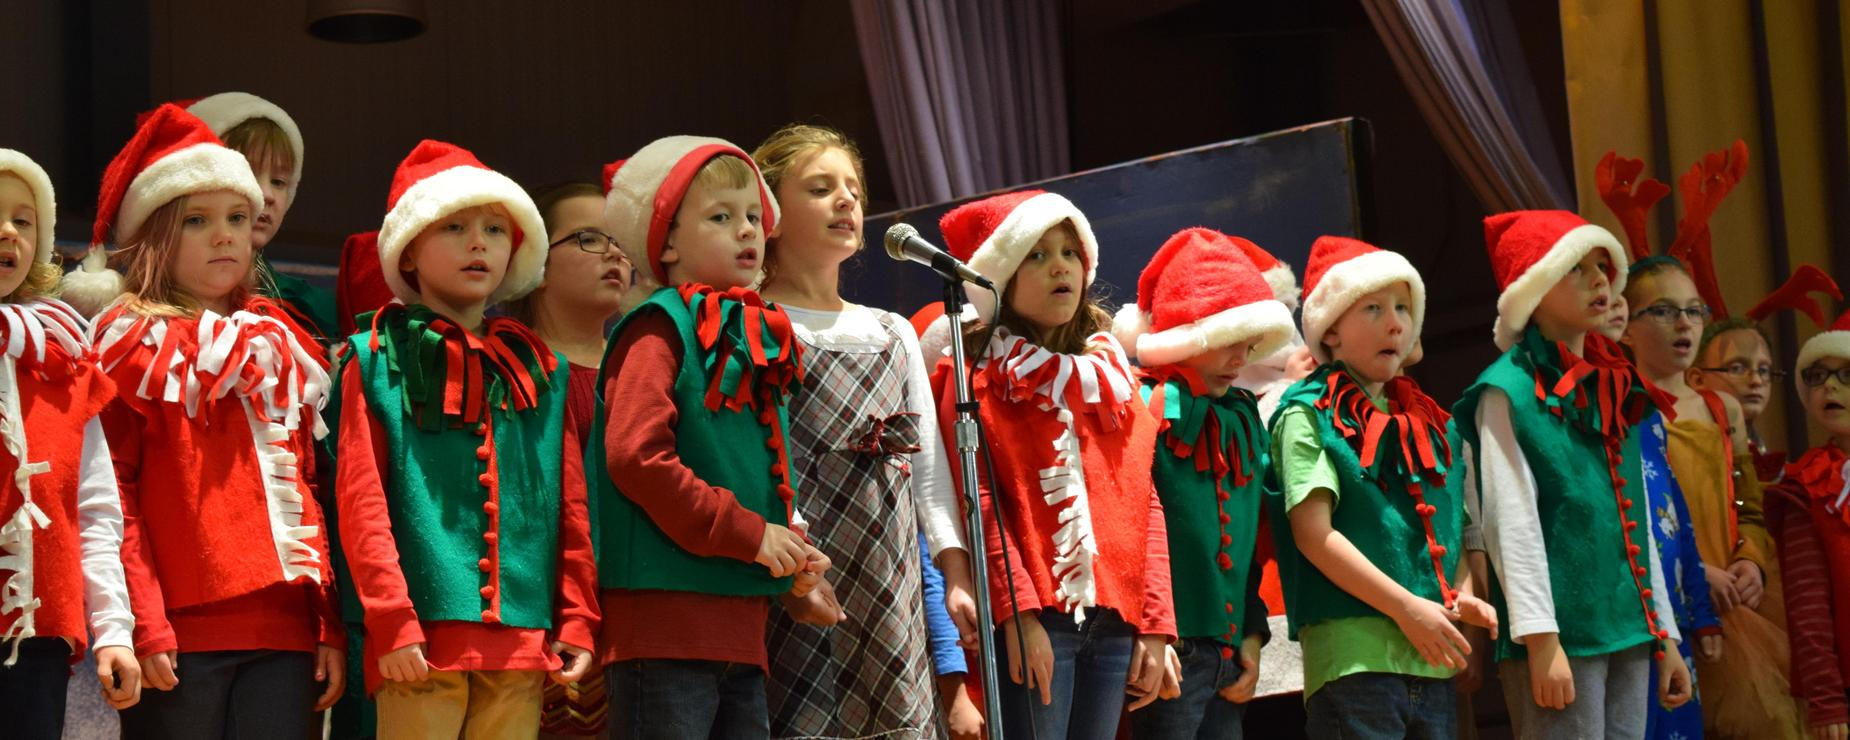 Elementary students dressed in elf costumes perform for their Winter concerts